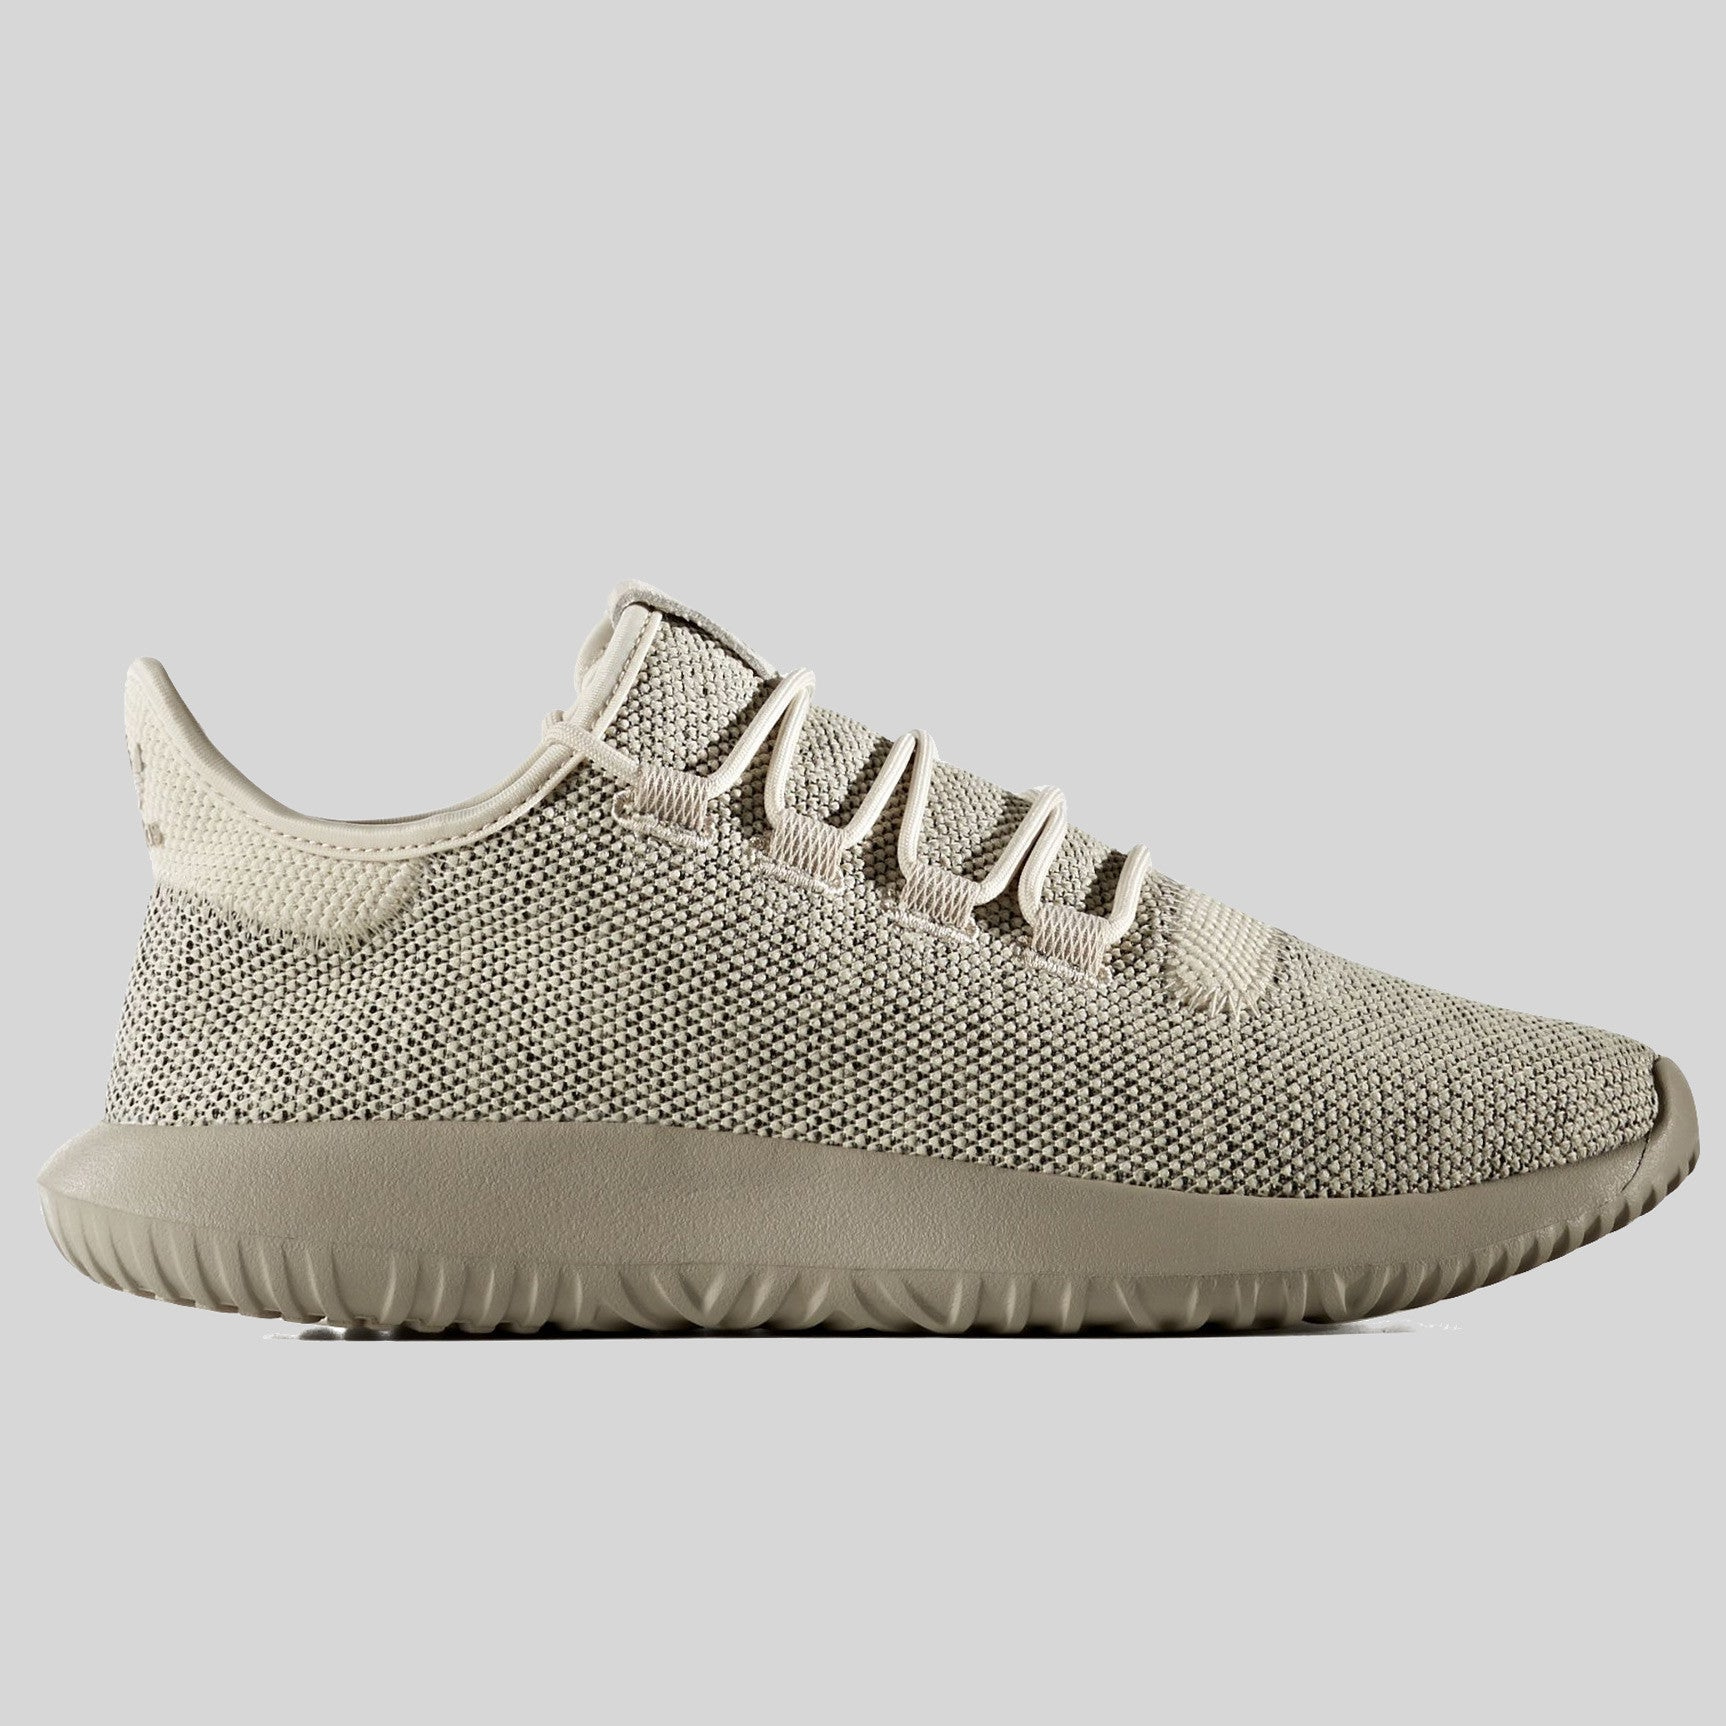 Adidas Tubular Knit Clear Brown